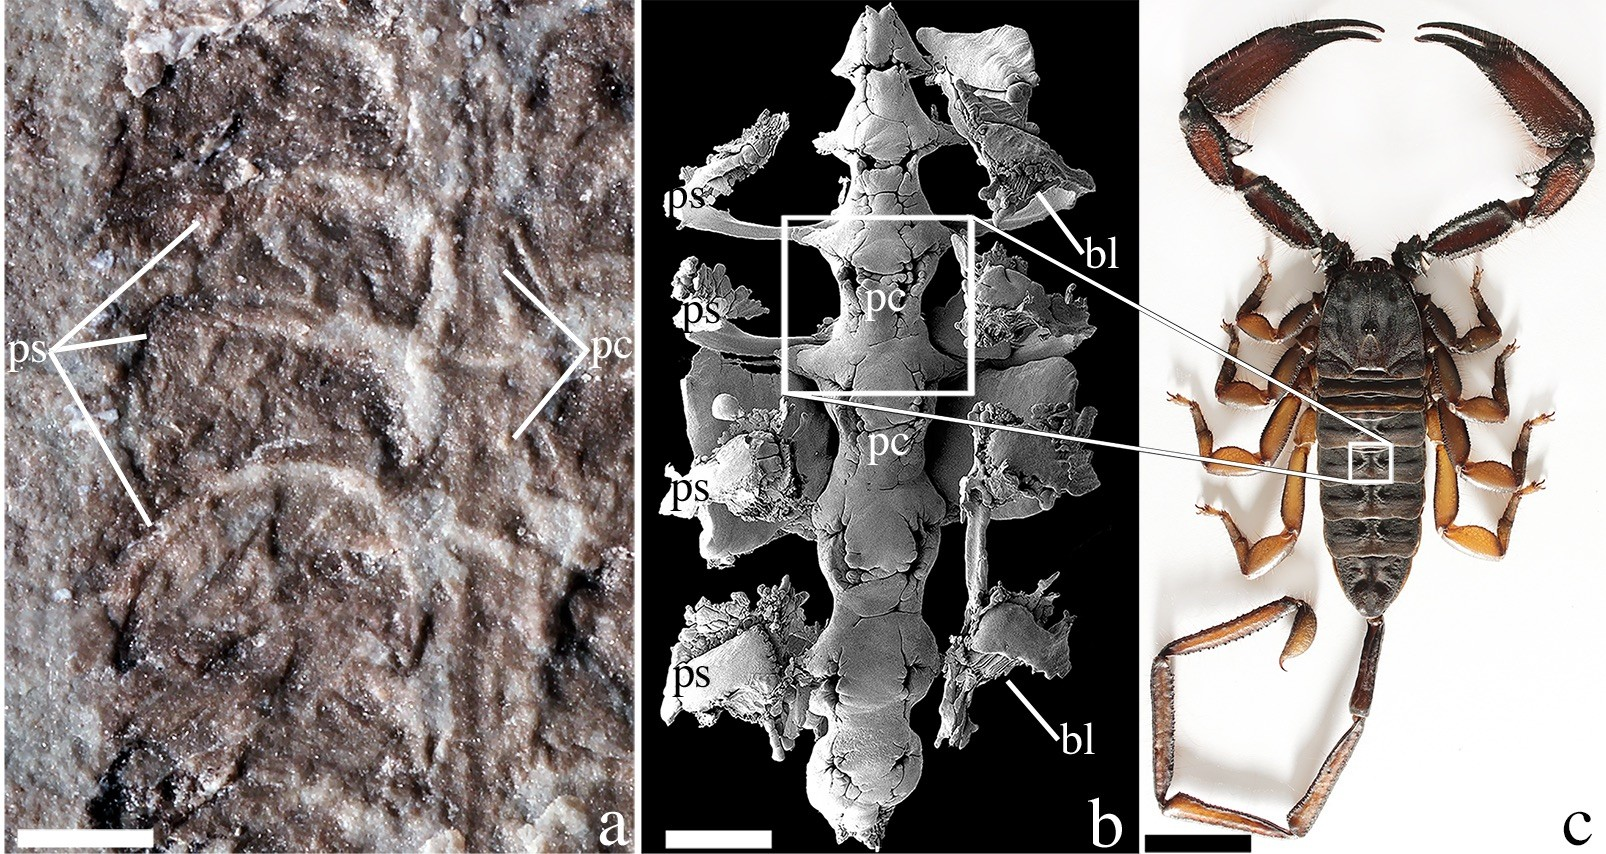 The fossil (left) was unearthed in Wisconsin in 1985. Scientists analyzed it and discovered the ancient animal's respiratory and circulatory organs (center) were near-identical to those of a modern-day scorpion (right). Images courtesy Andrew Wendruff